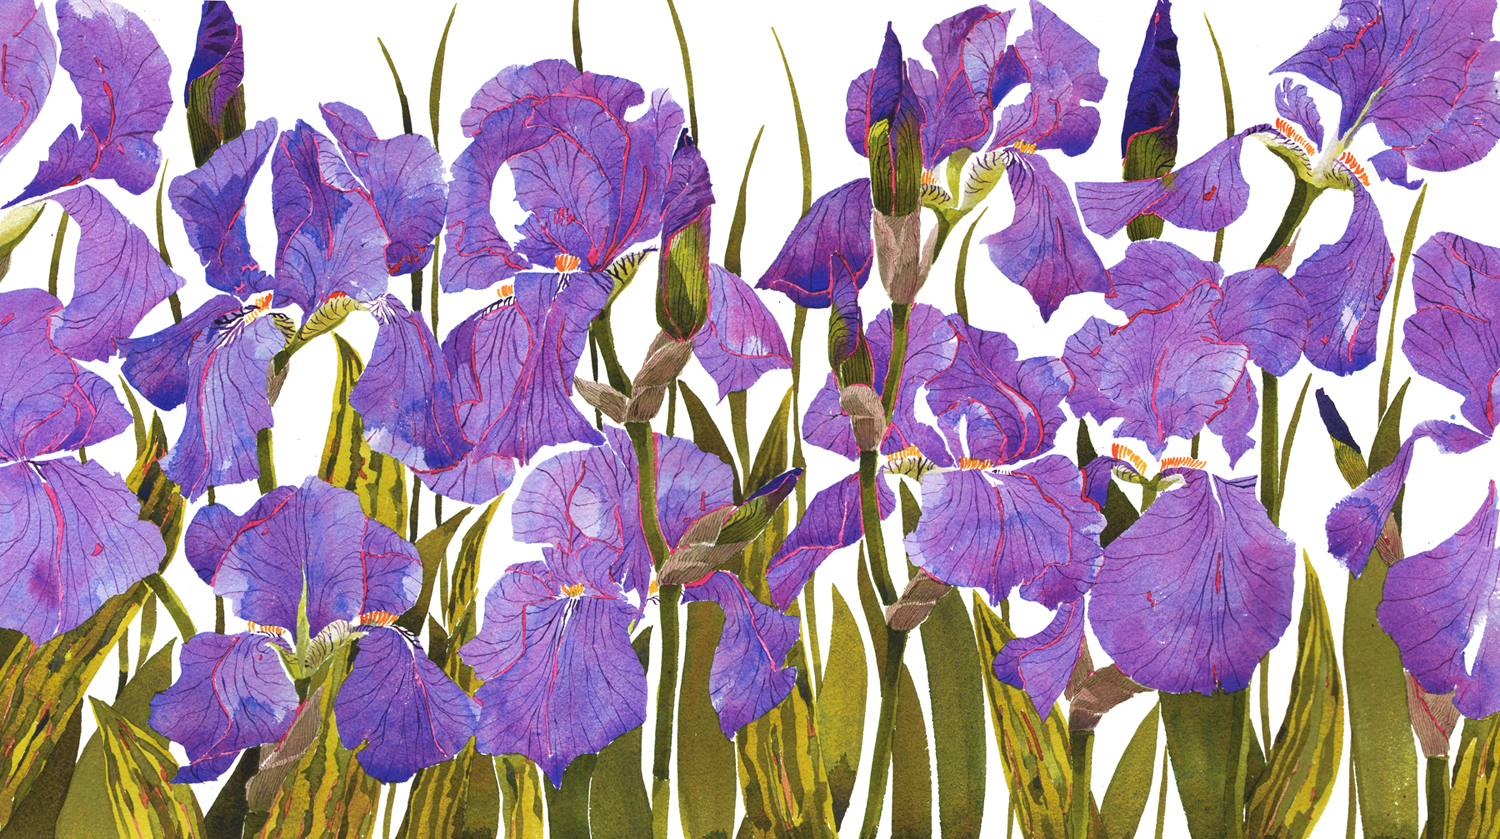 Bearded Irises,NEW image